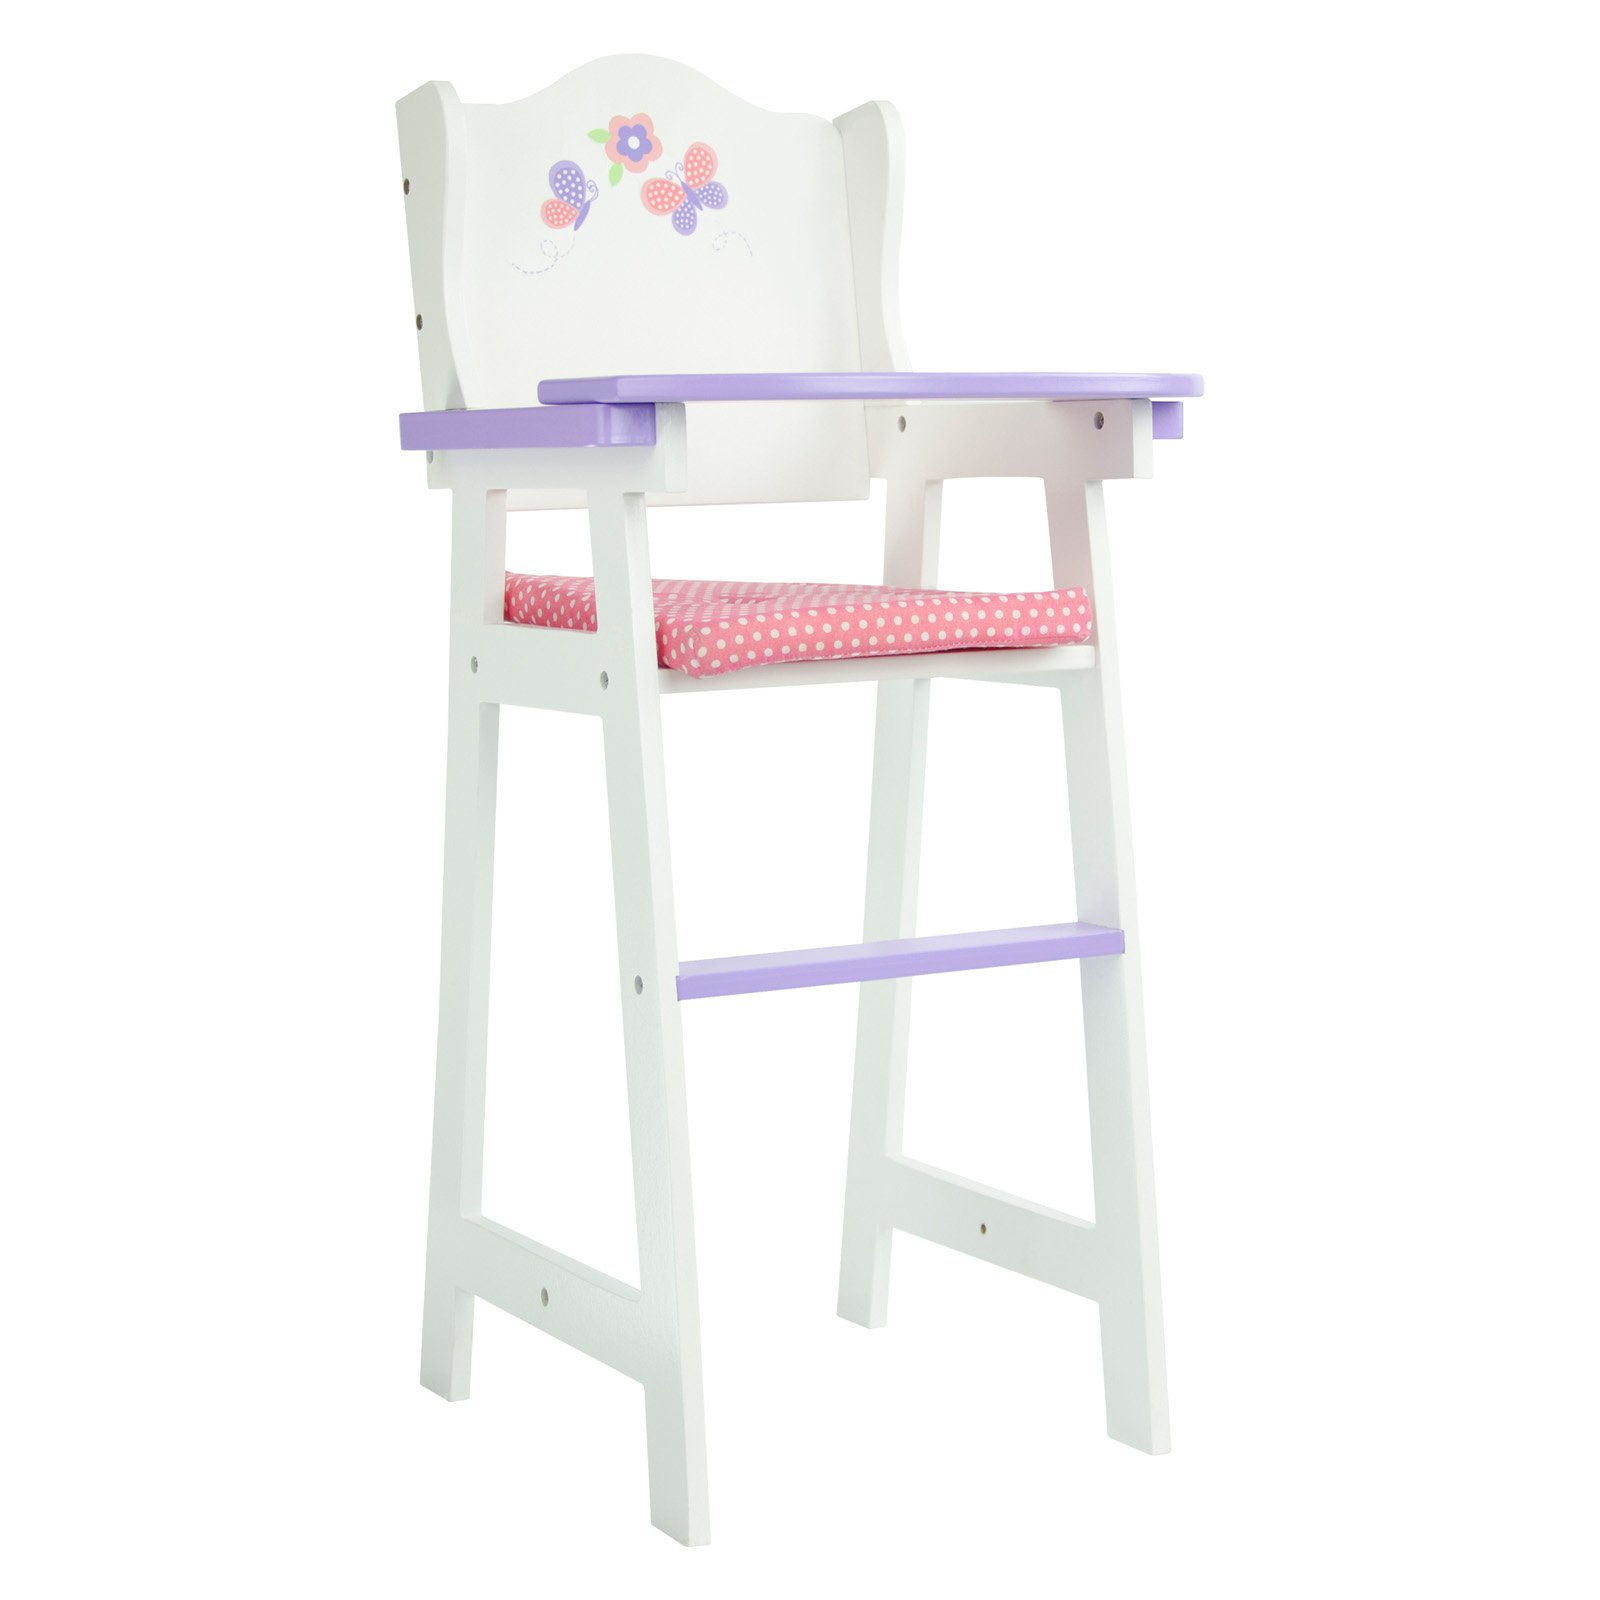 baby doll high chairs paris cafe sydney olivia s little world princess chair